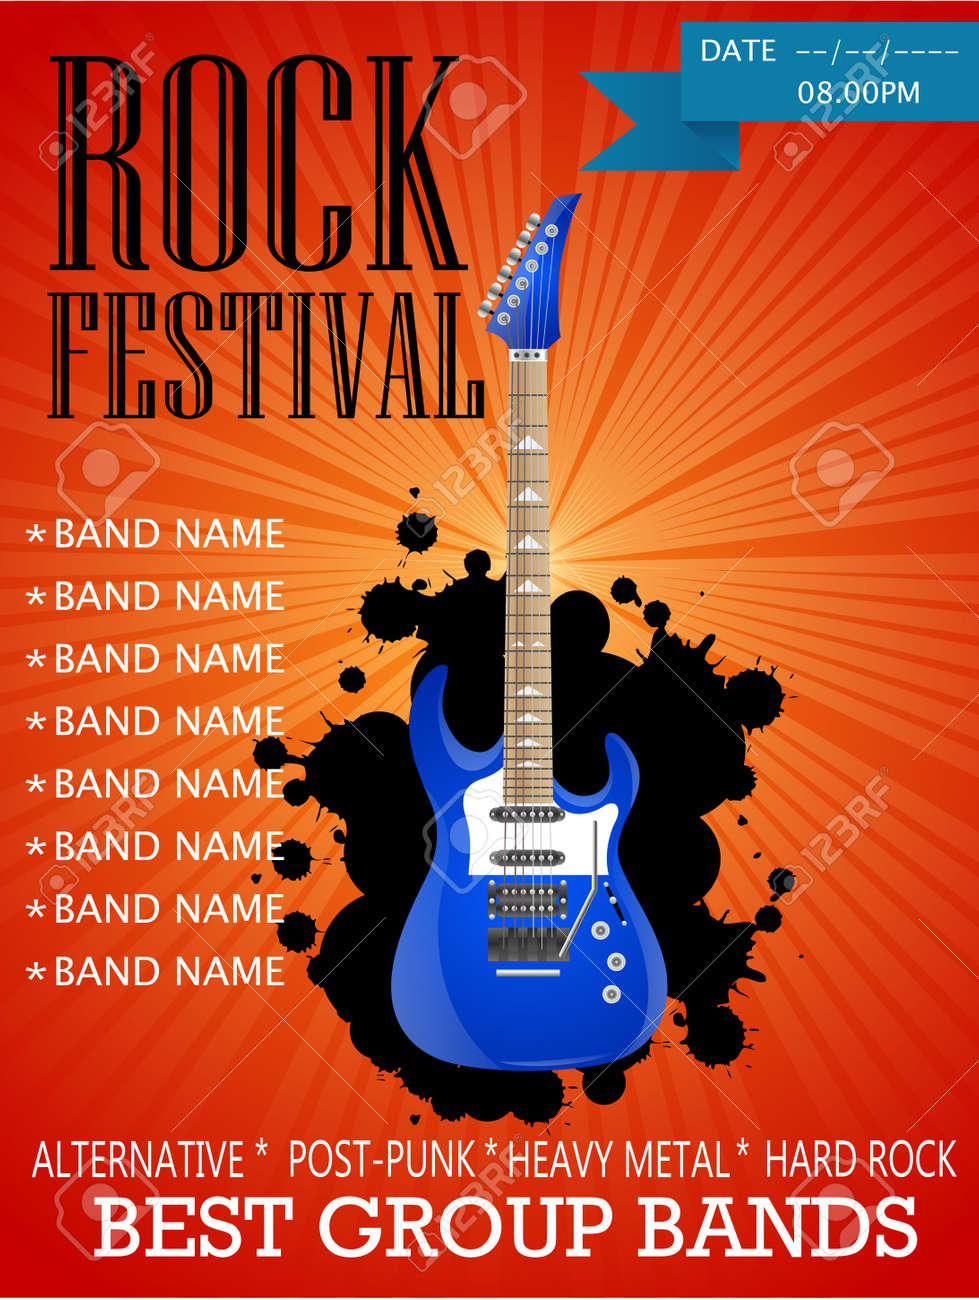 Rock Festival Banner Design Template With Guitar Vector Illustration Royalty Free Cliparts Vectors And Stock Illustration Image 92475357